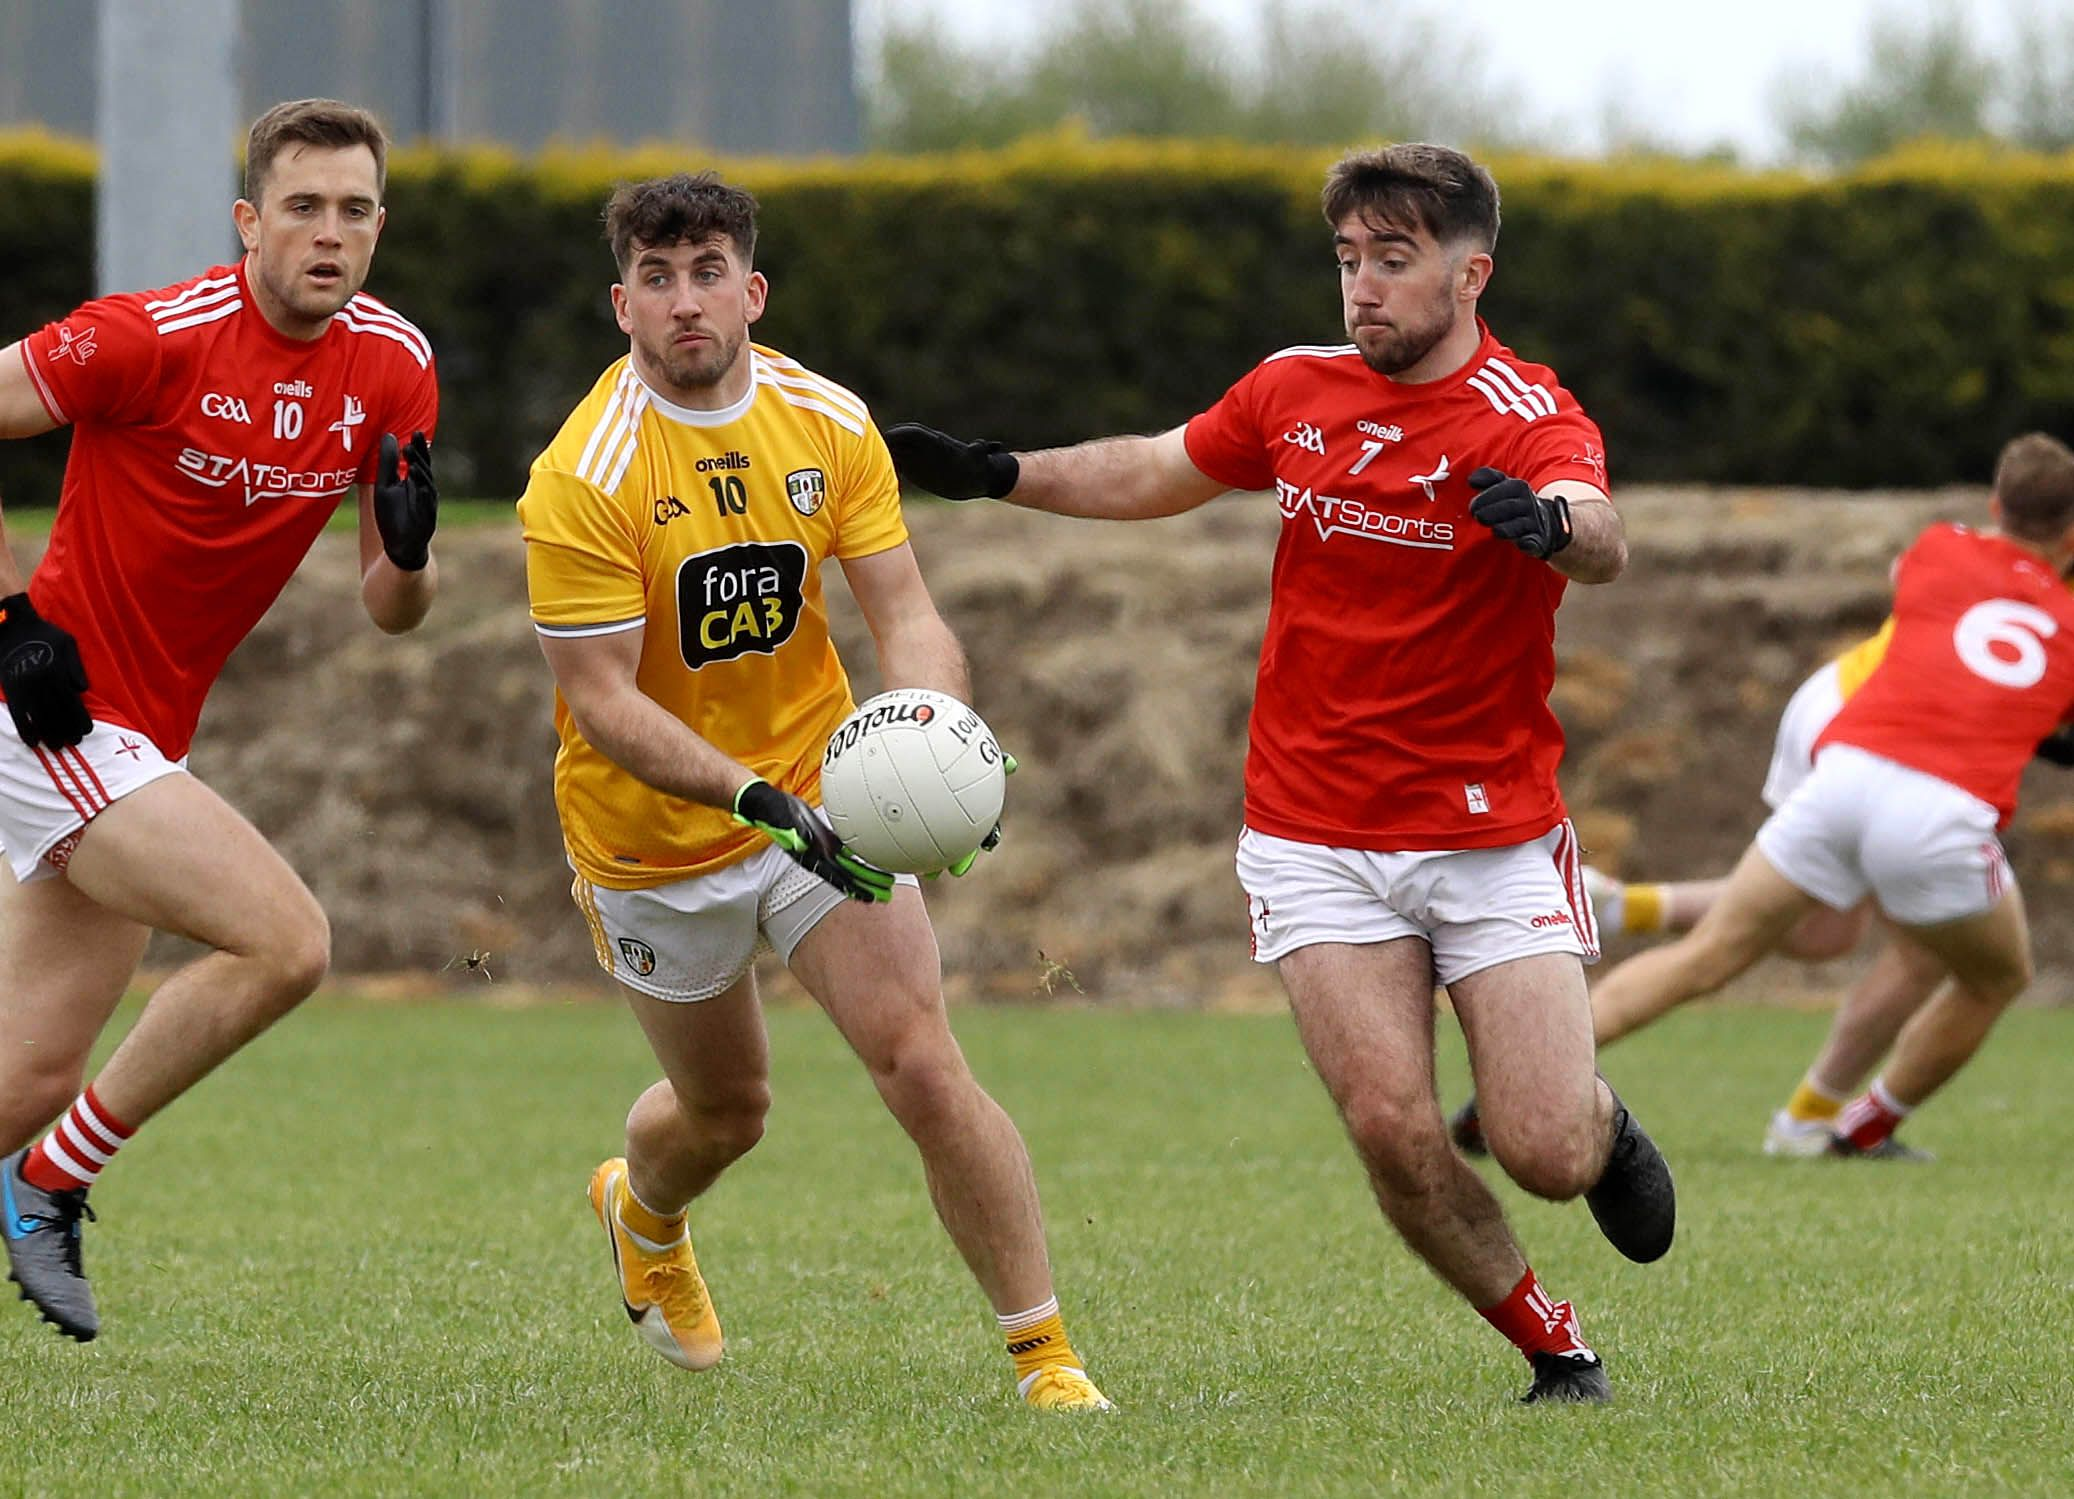 Antrim\'s Ryan Murray hit what proved to be the winning point deep into injury-time as the Saffrons made a winning start to their Division Four campaign against Louth